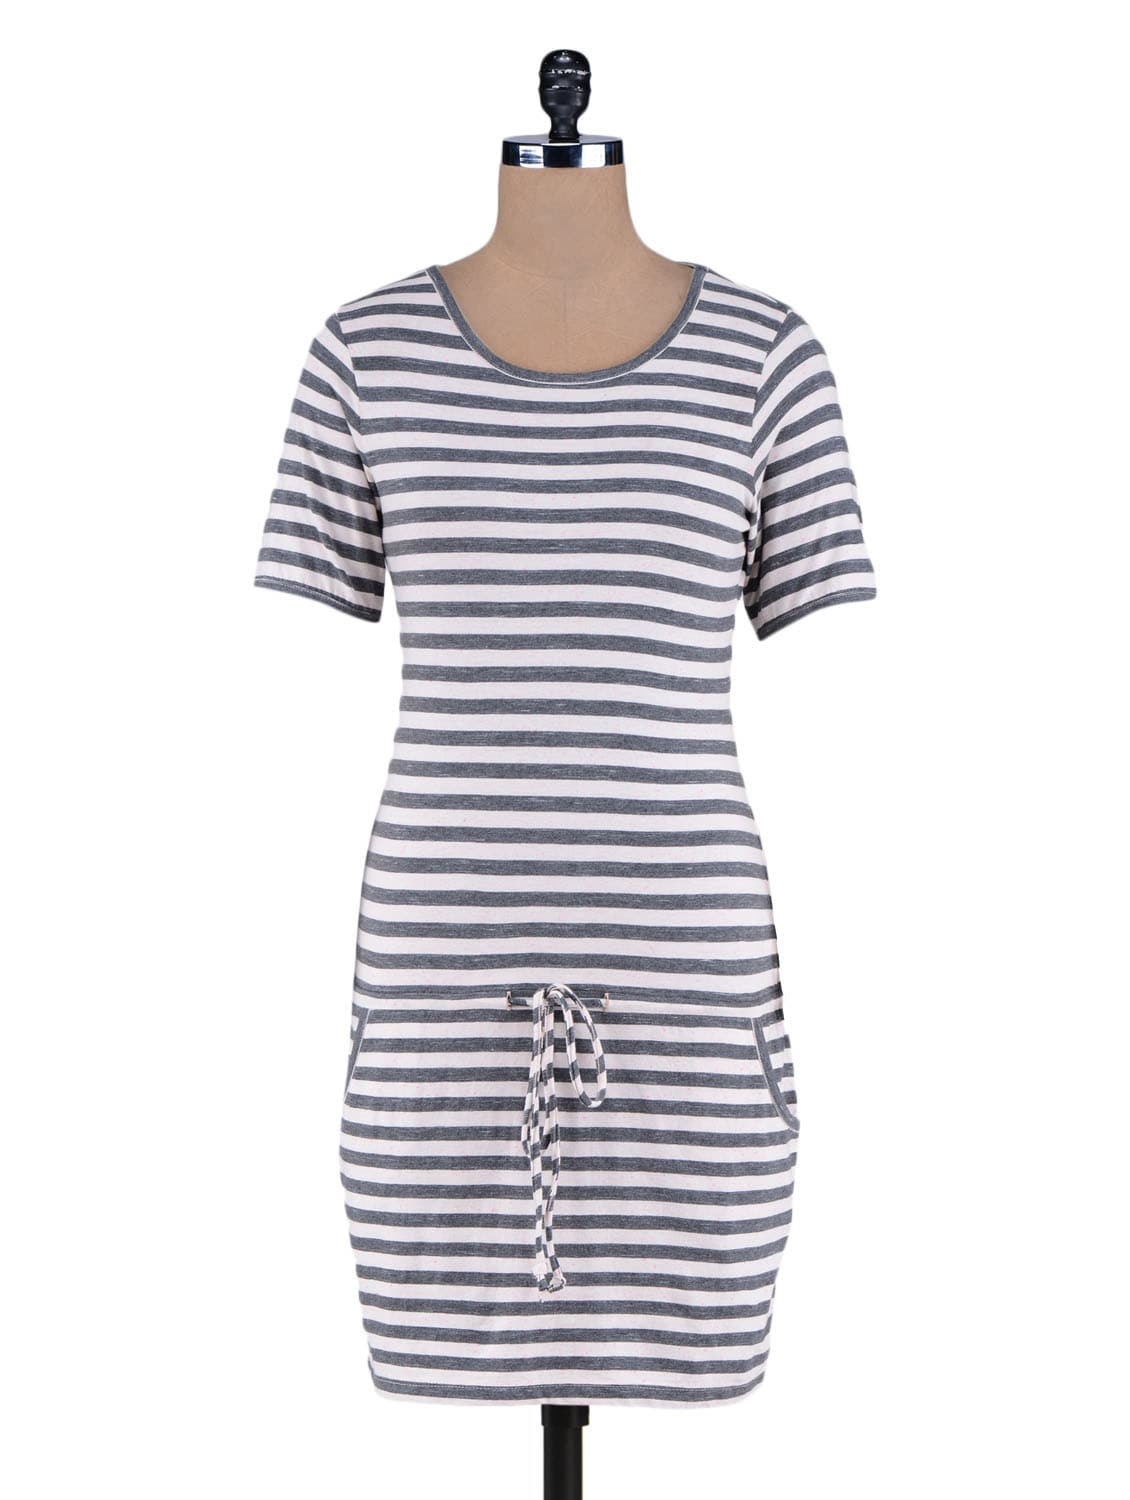 Grey Yarn Dyed Stripes Knitted Cotton Dress - By